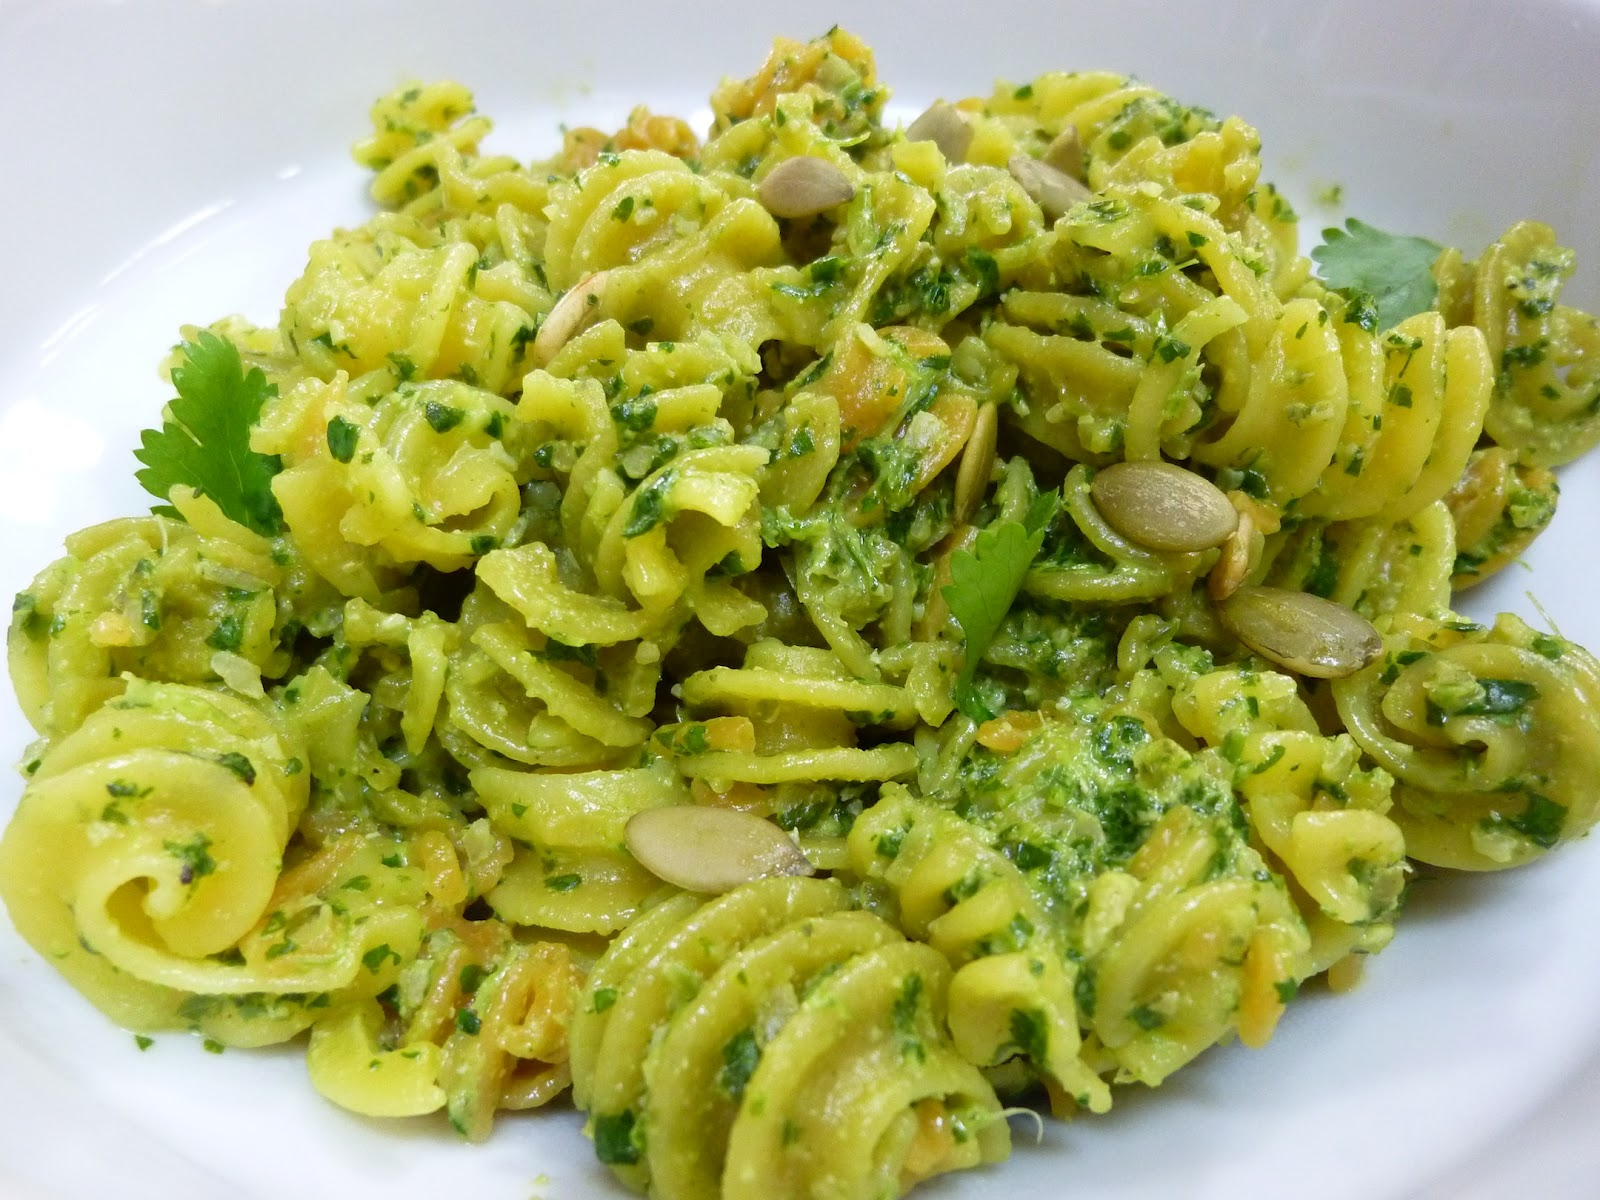 cilantro+pesto+on+pasta.JPG